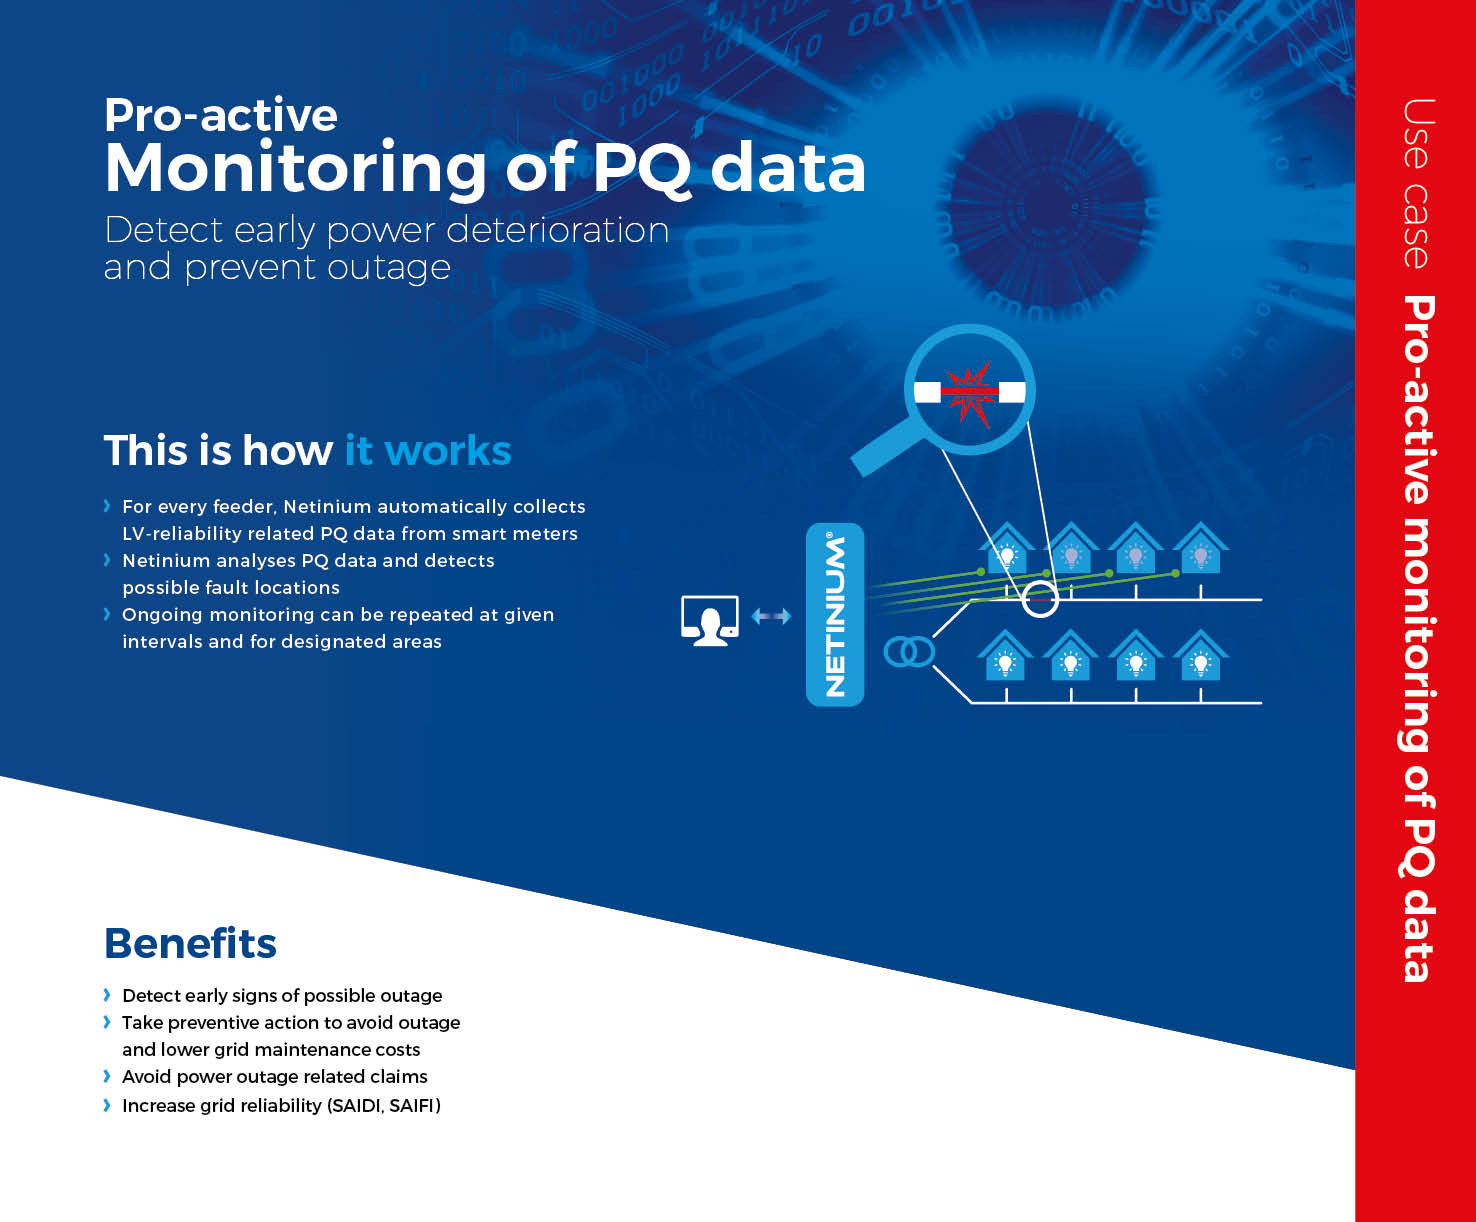 Pro-active Monitoring of PQ data